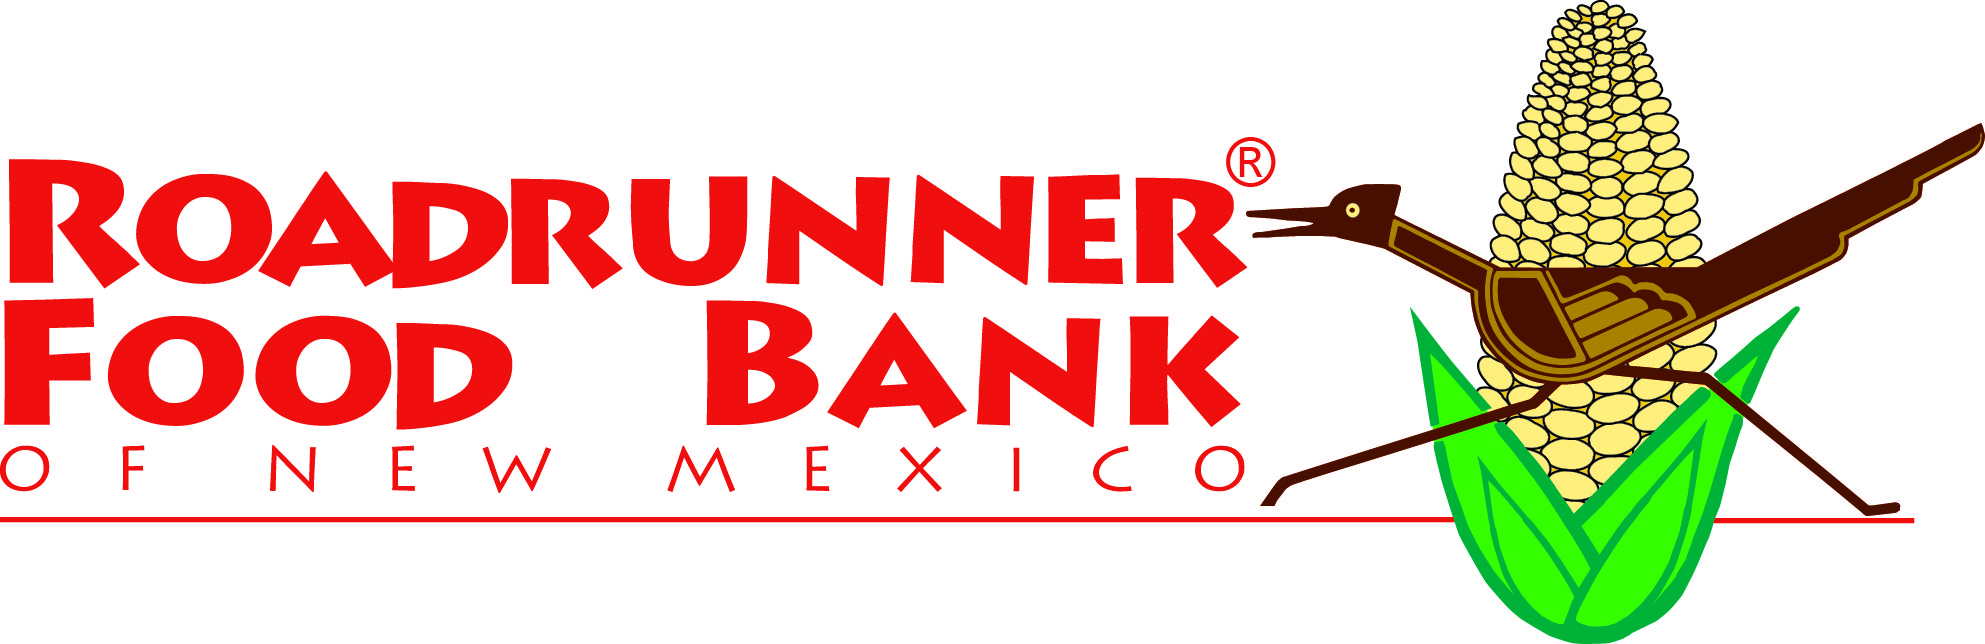 Roadrunner Food Bank Logo